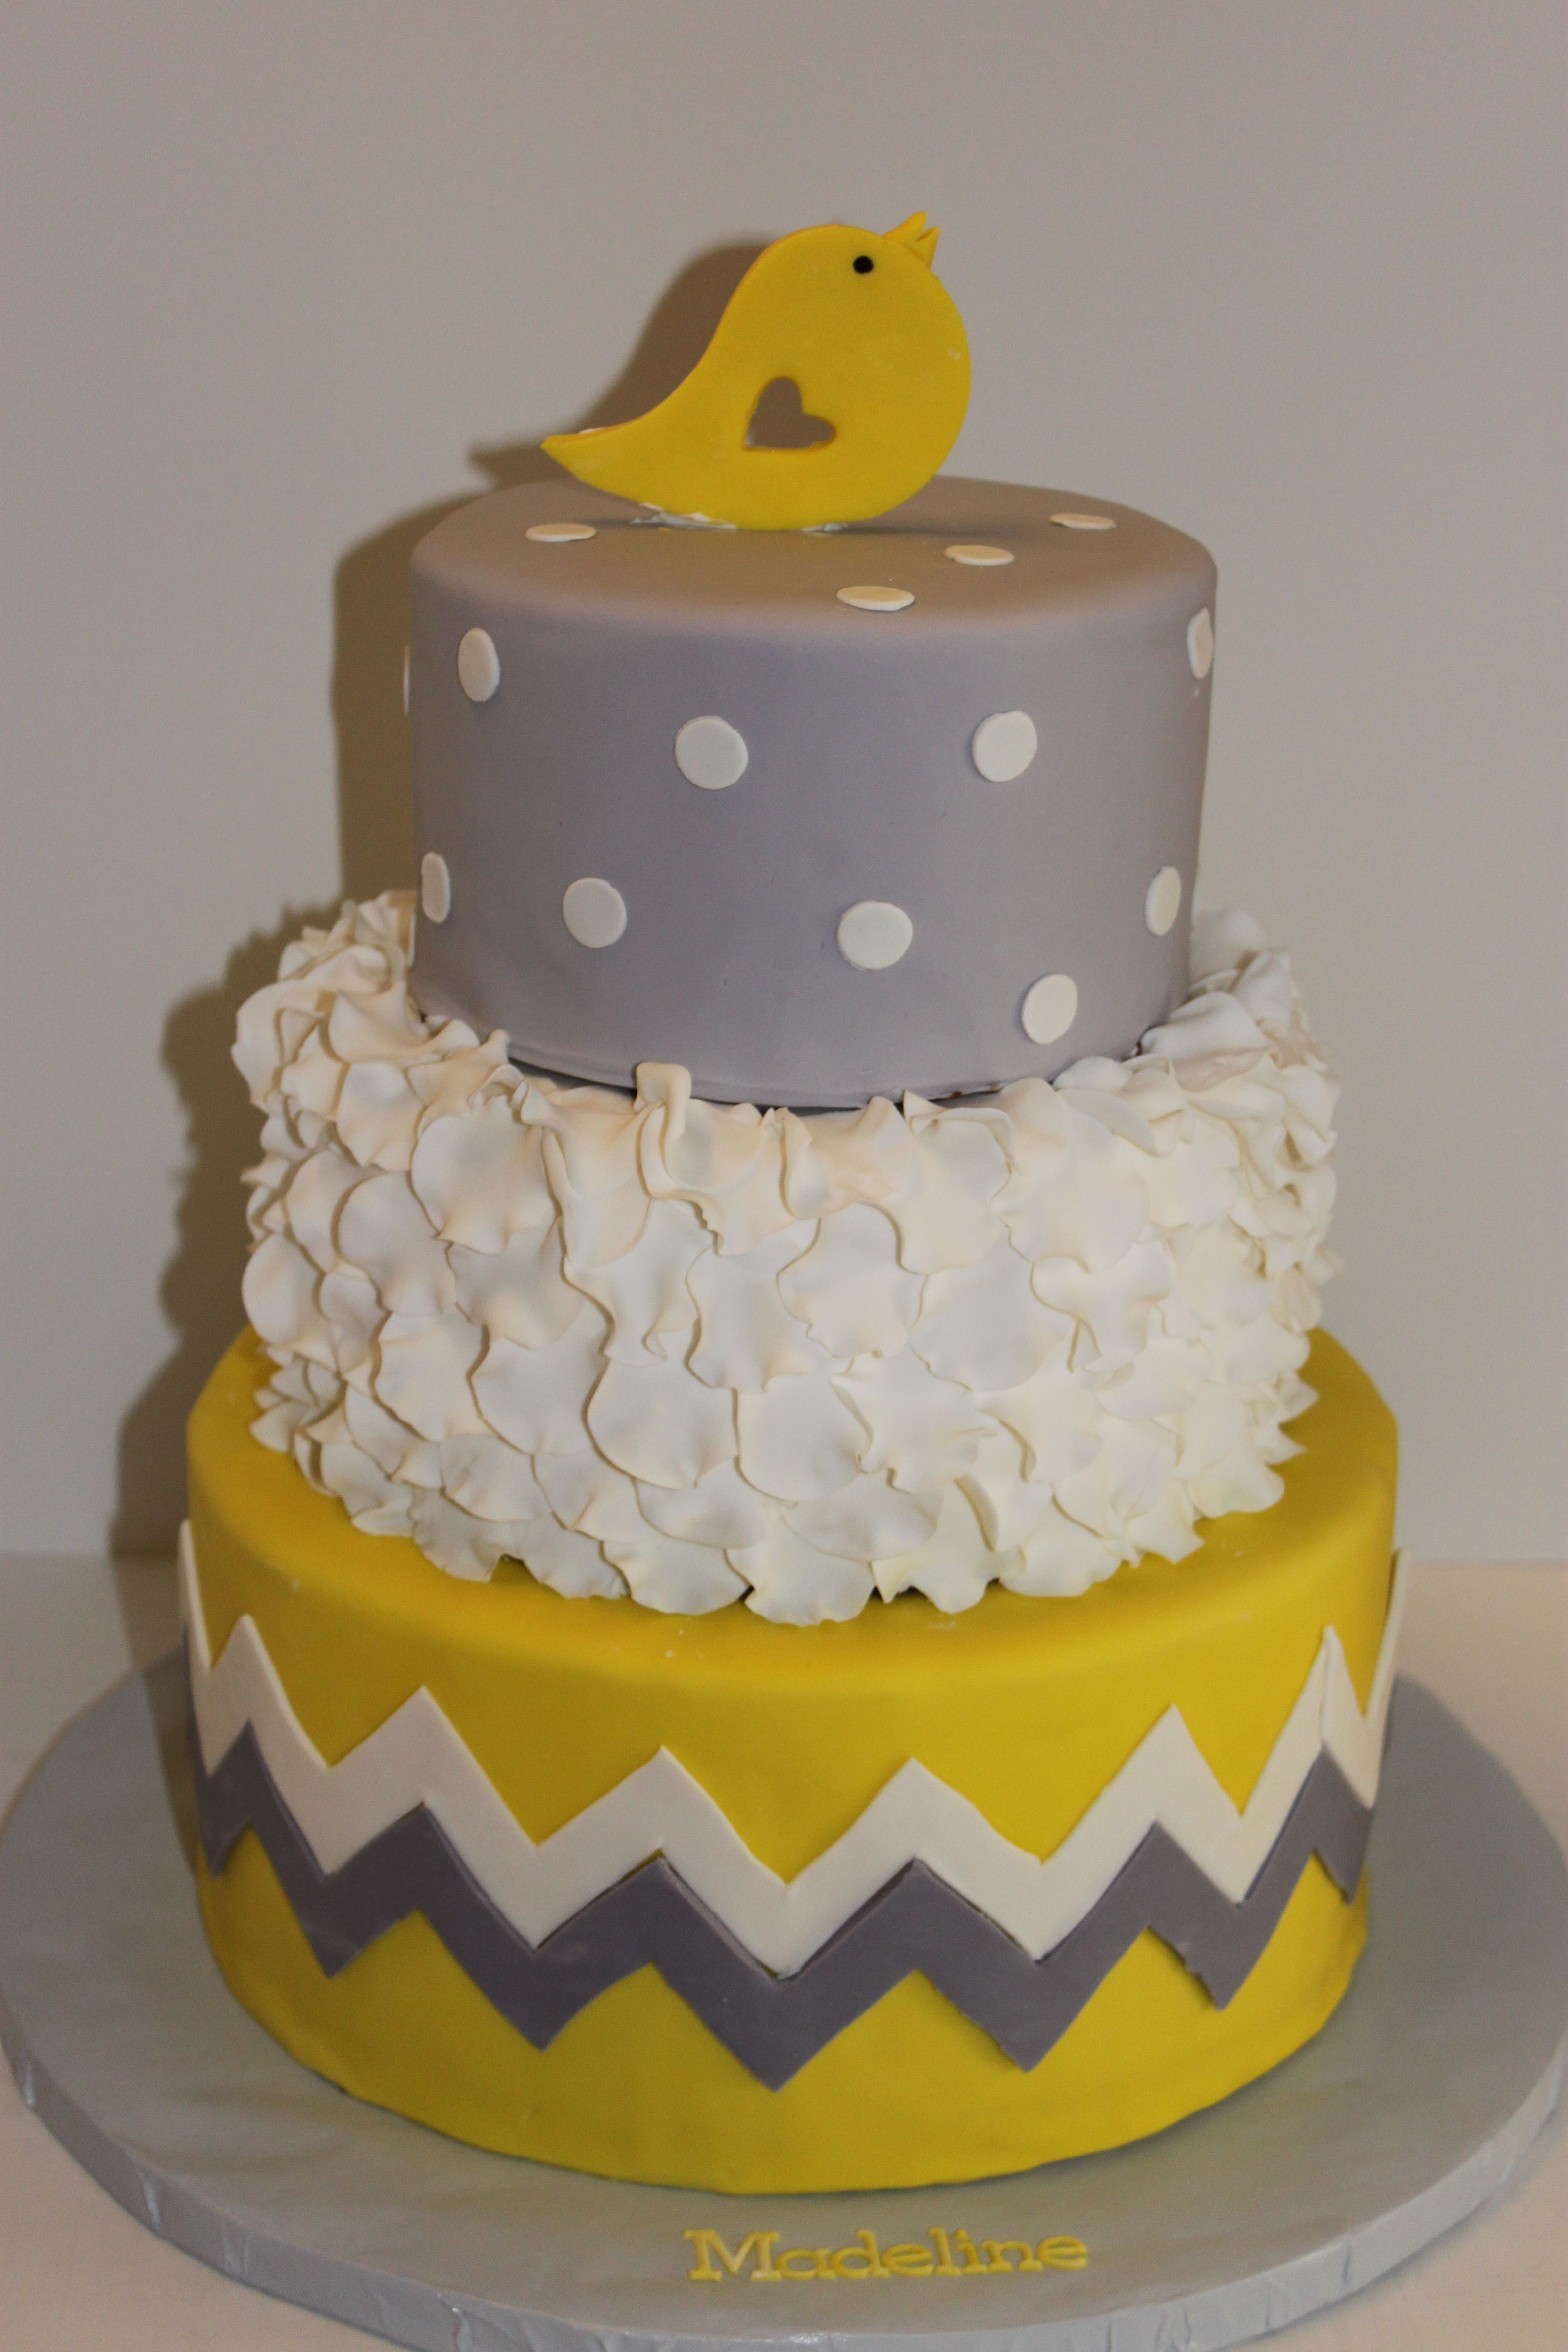 Bird Cake (Could Be For A Baby Shower, Birthday Party,